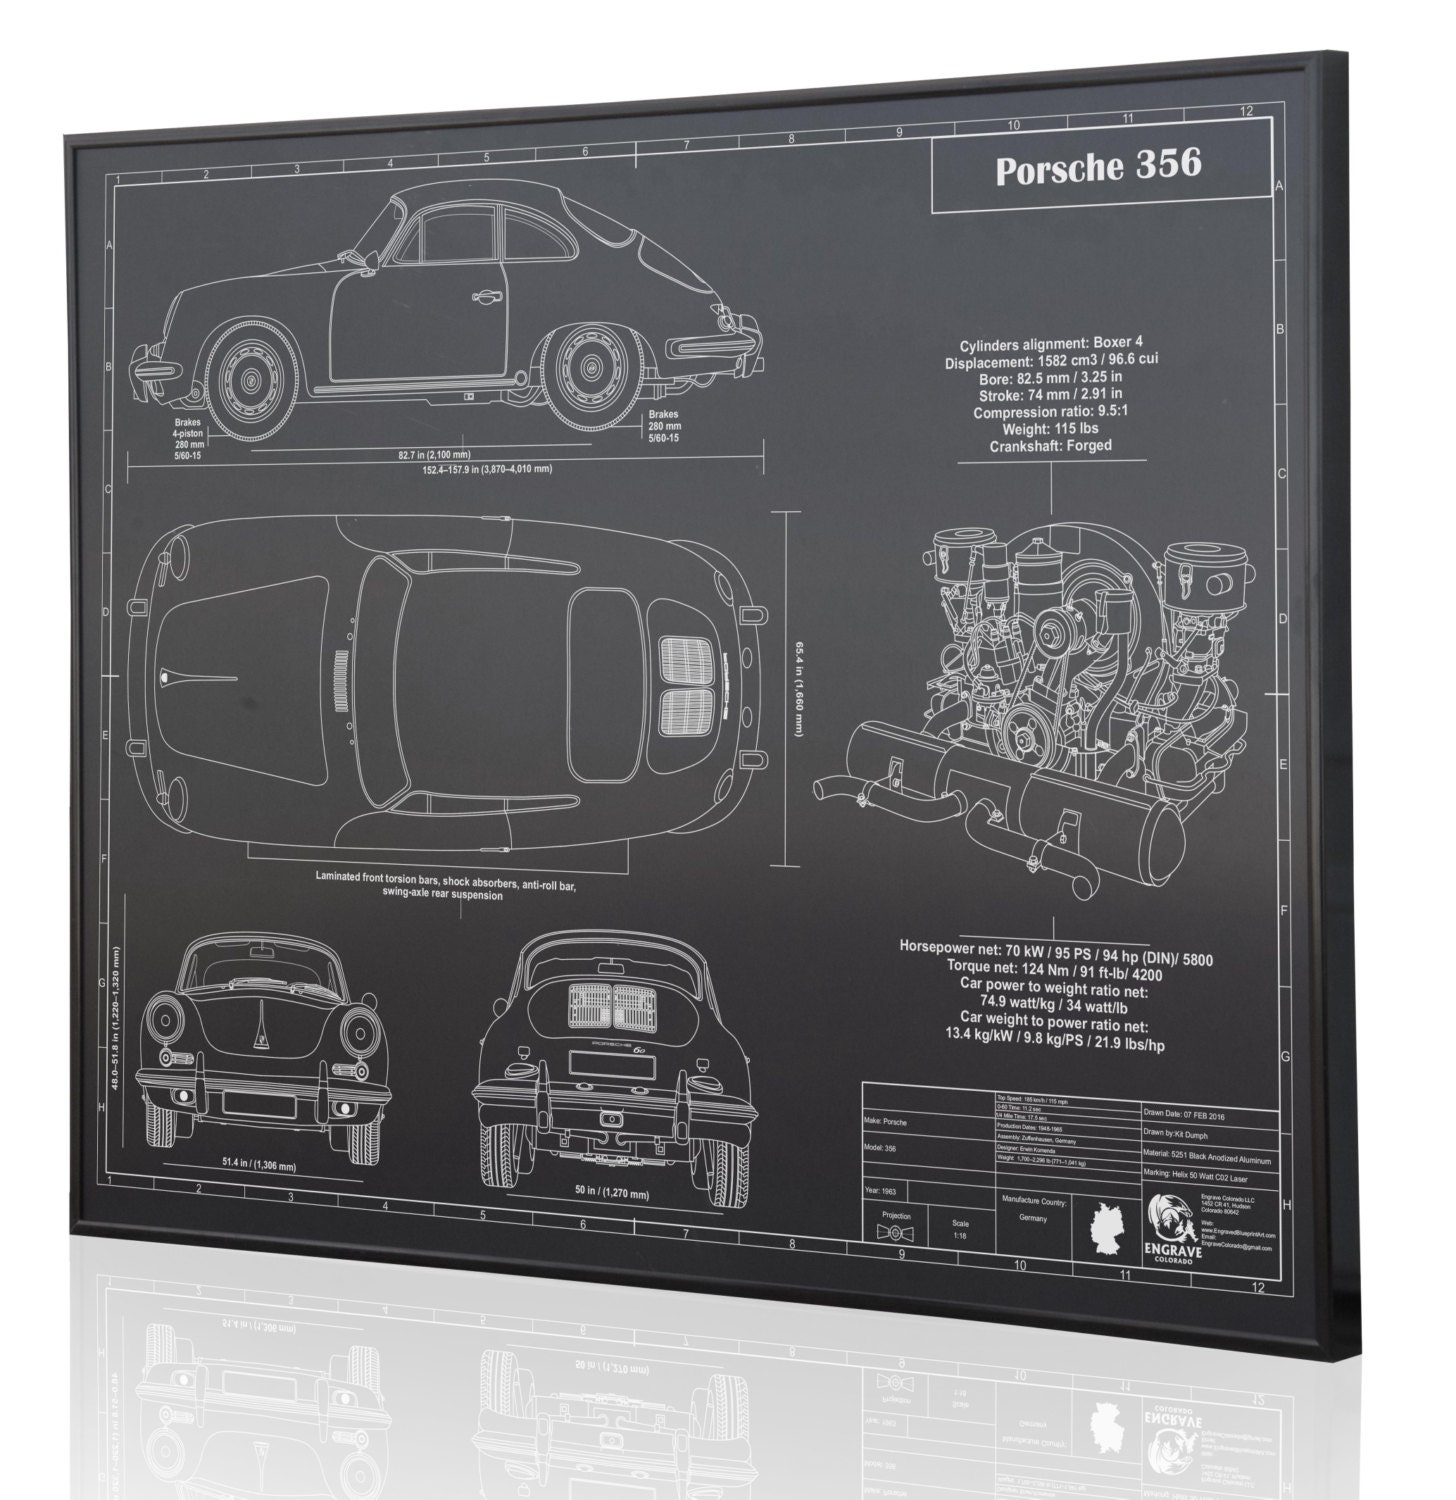 4 Cylinder Engine Diagram Posters Trusted Wiring Diagrams Porsche 356 Laser Engraved Wall Art Poster On Metal Etsy 8